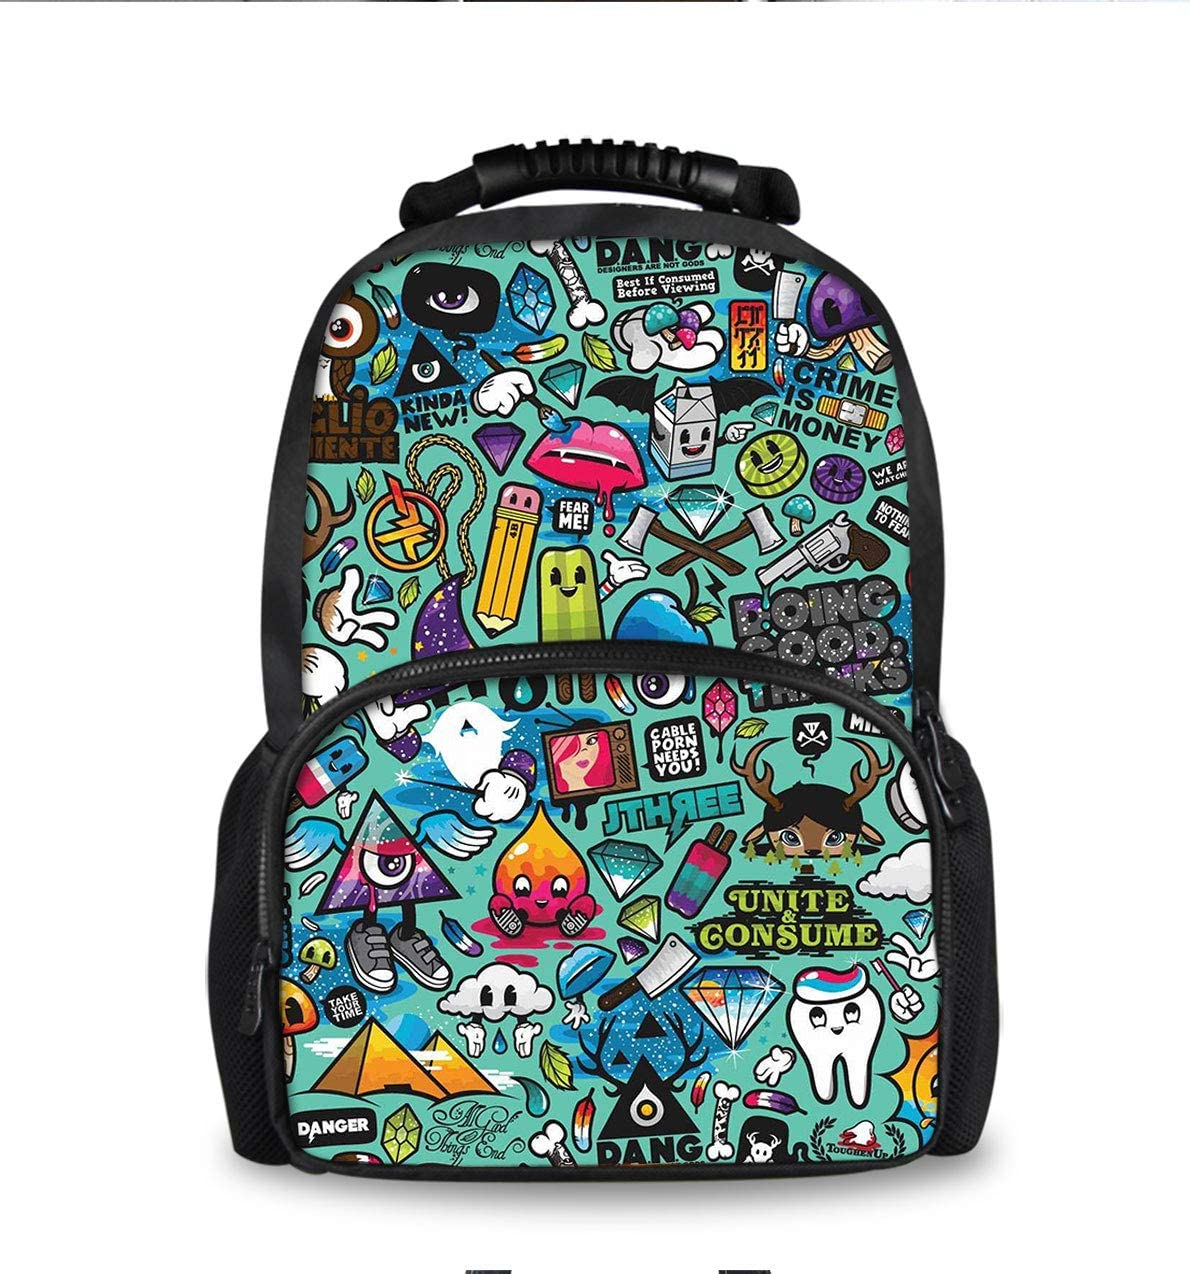 Lightweight Backpack for School Business Travel, Retro Robot Trippy Art Bag for Men Women Kids Youth, Large Capacity Daypack with Bottle Side Pockets